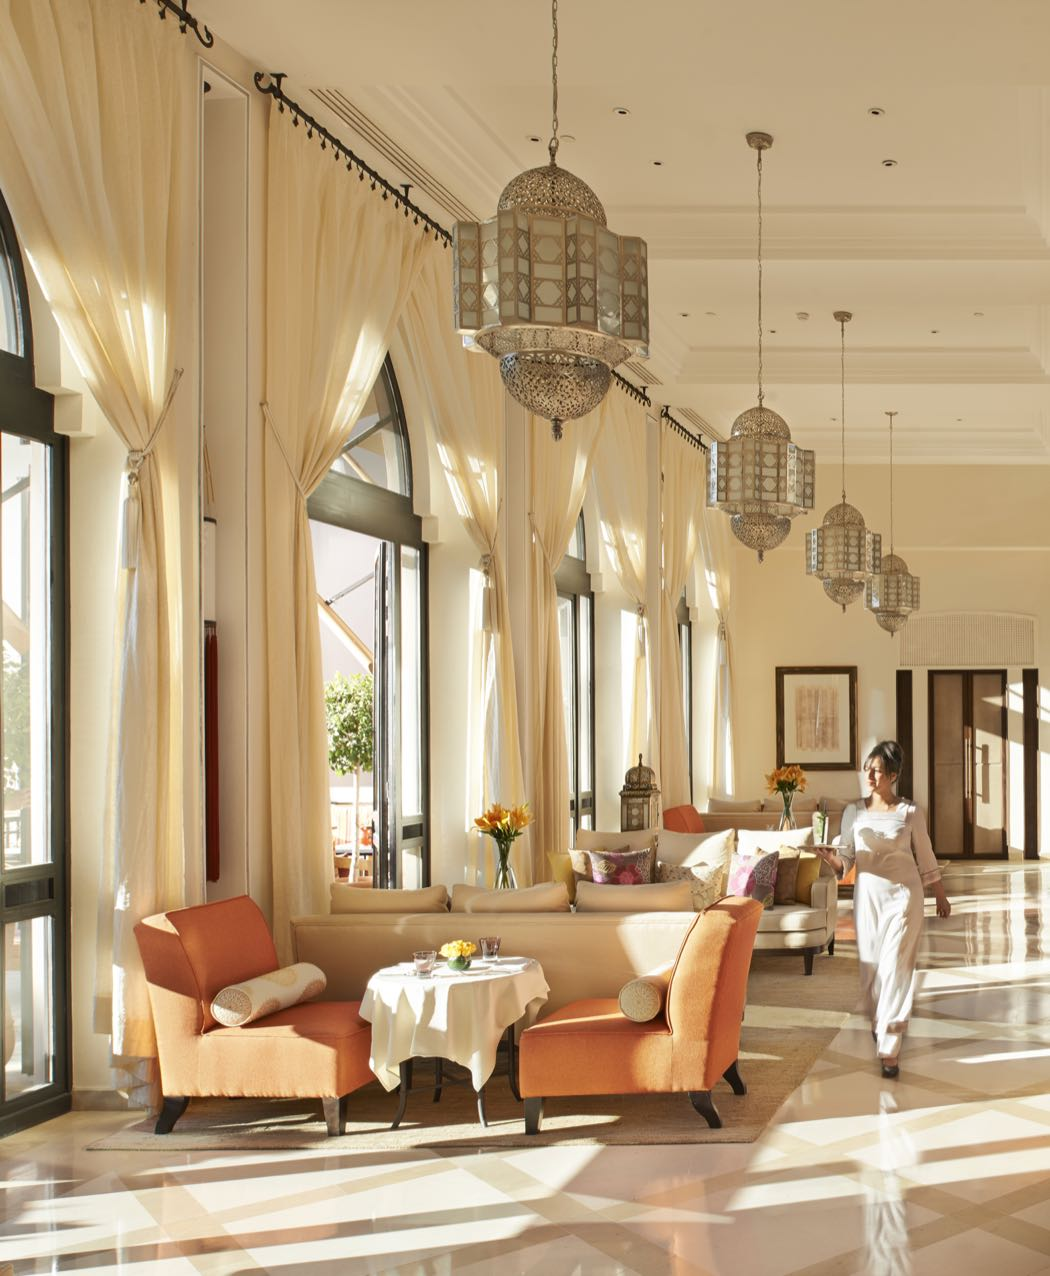 Review Of The Four Seasons Marrakech